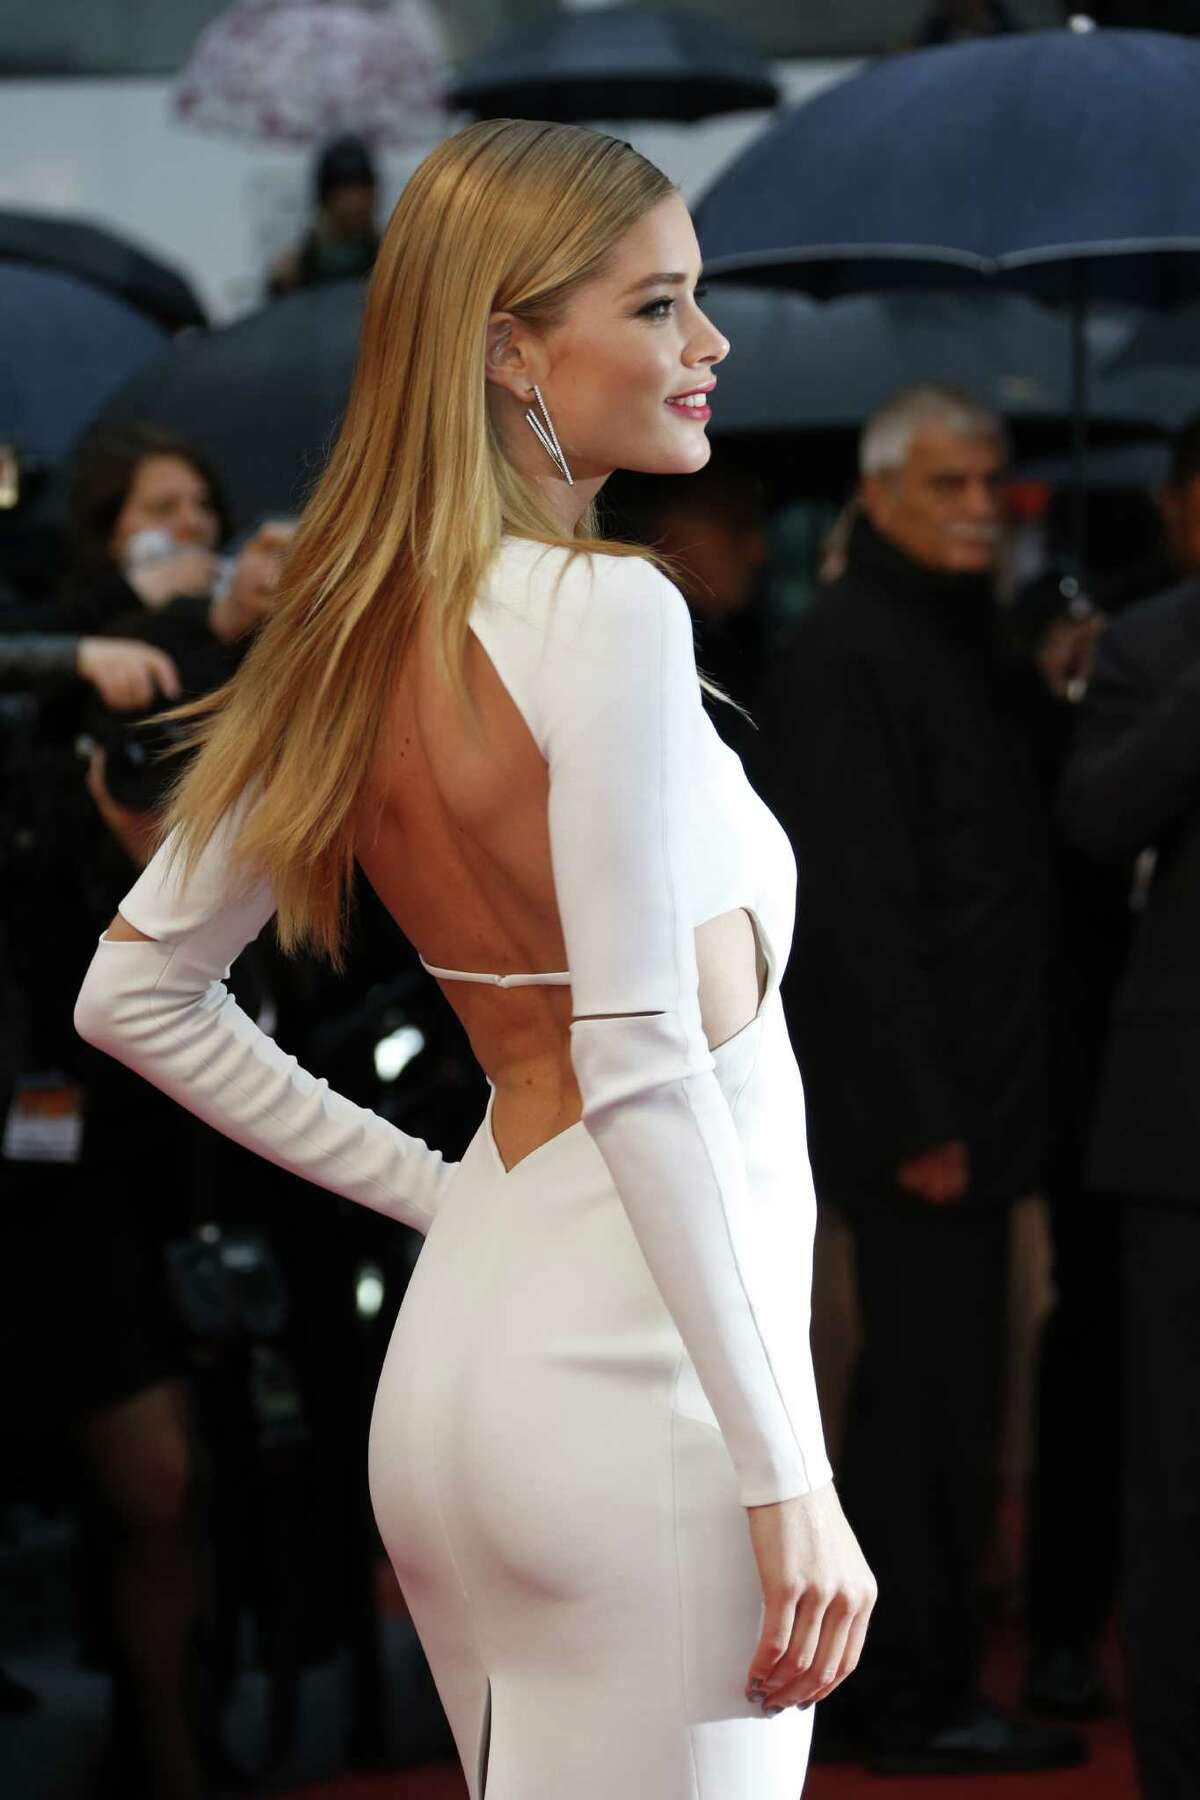 Dutch model Doutzen Kroes poses on May 18, 2013 as she arrives for the screening of the film